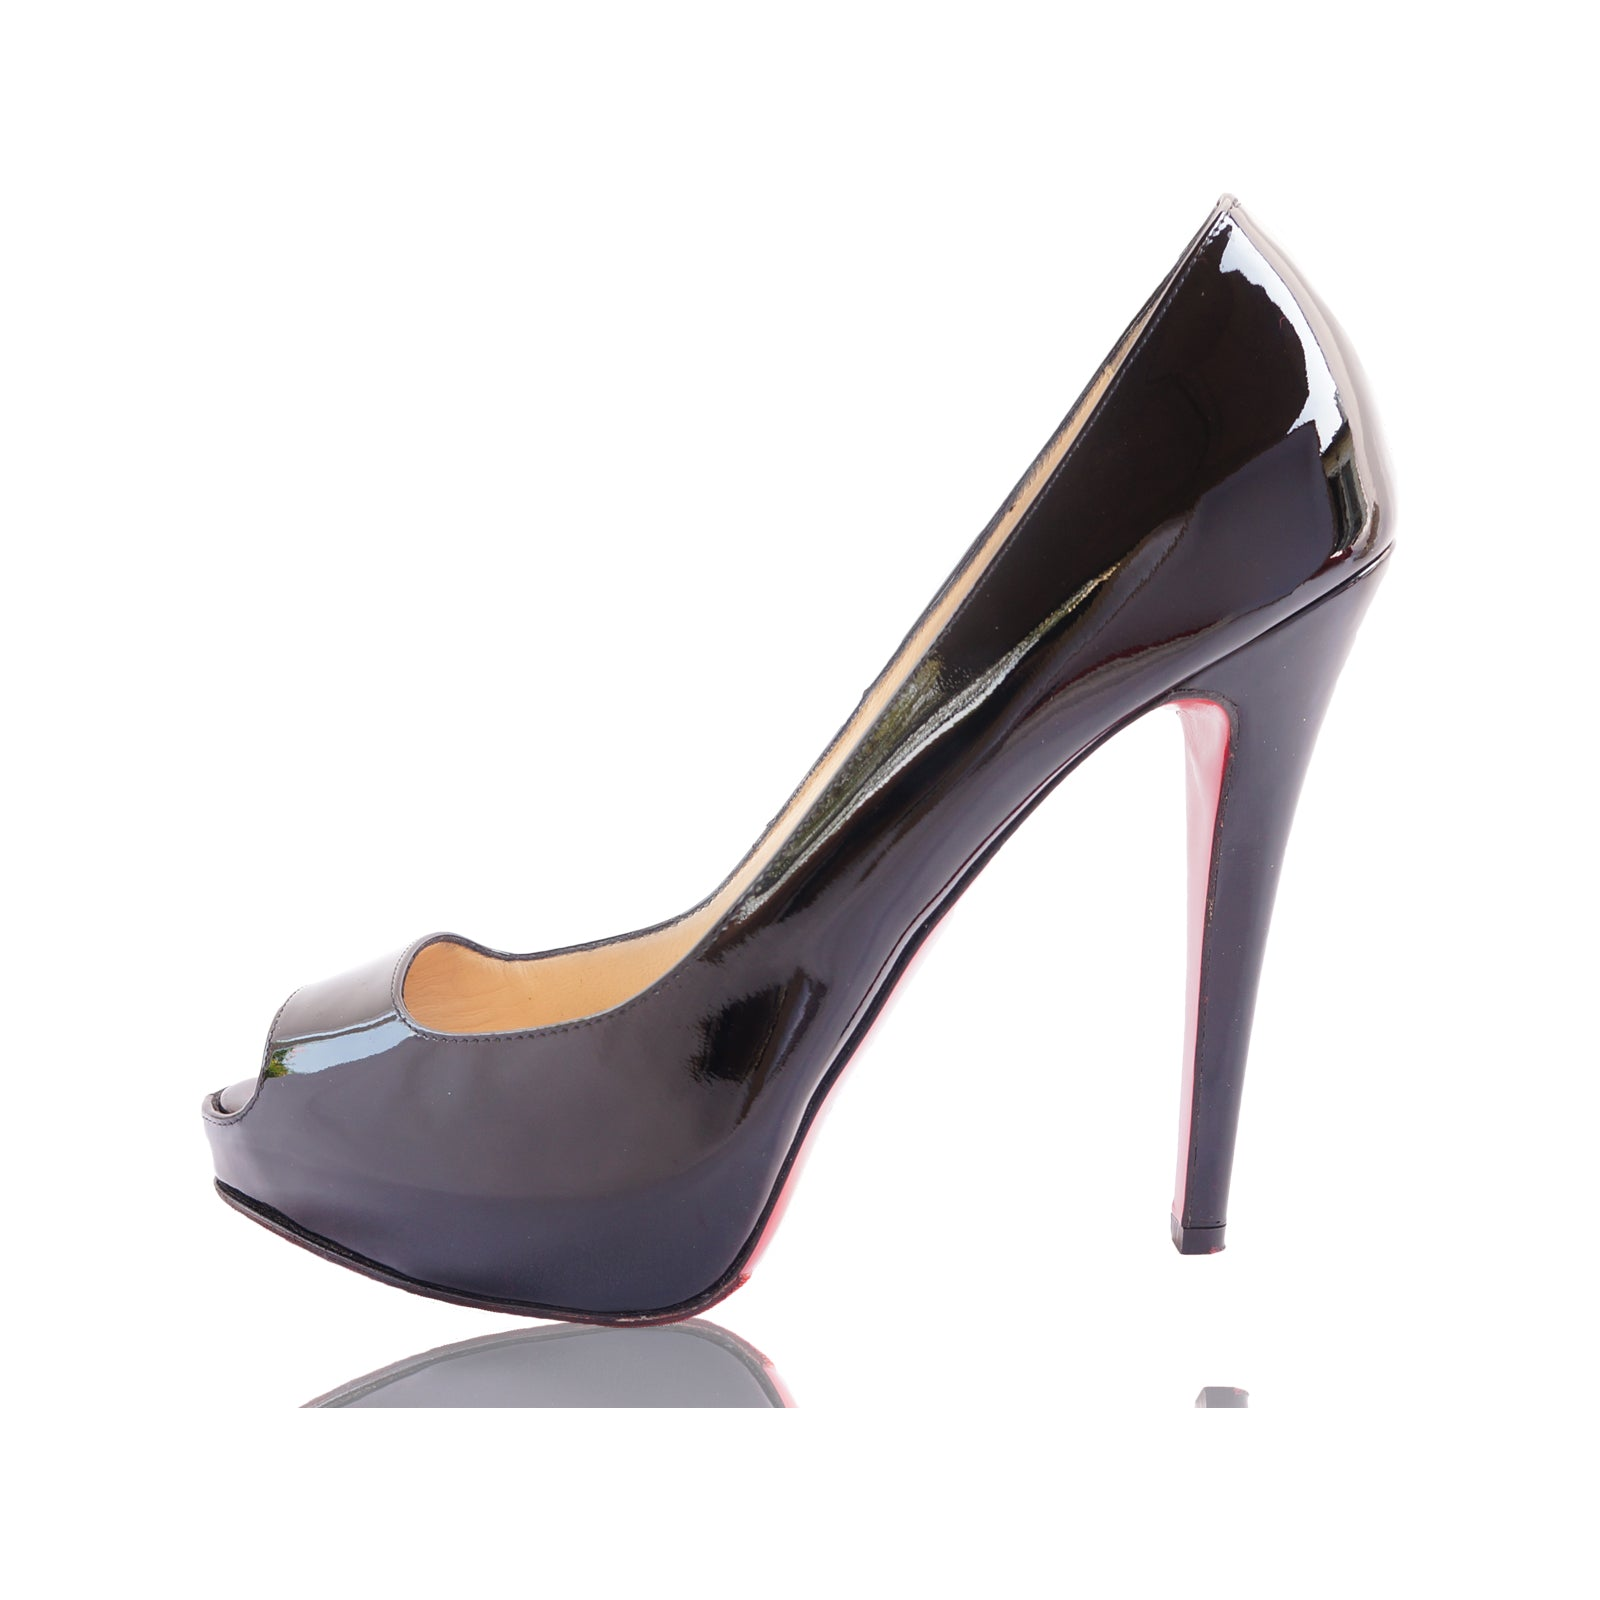 b53fd4f388 ... release date christian louboutin 120 mlle dam patent leather peep toe  pumps 069c4 03c92